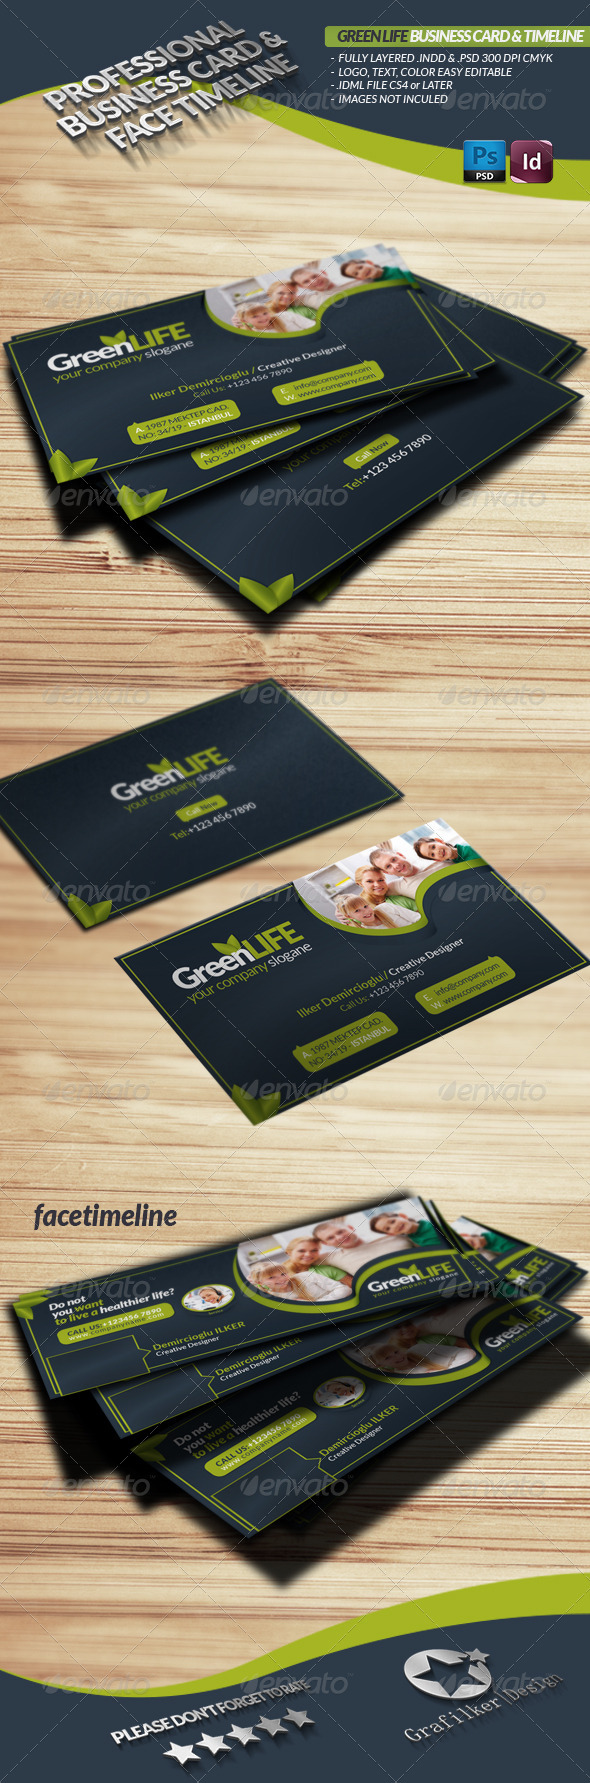 GraphicRiver Green Life Business Card & Face-Timeline 3642051